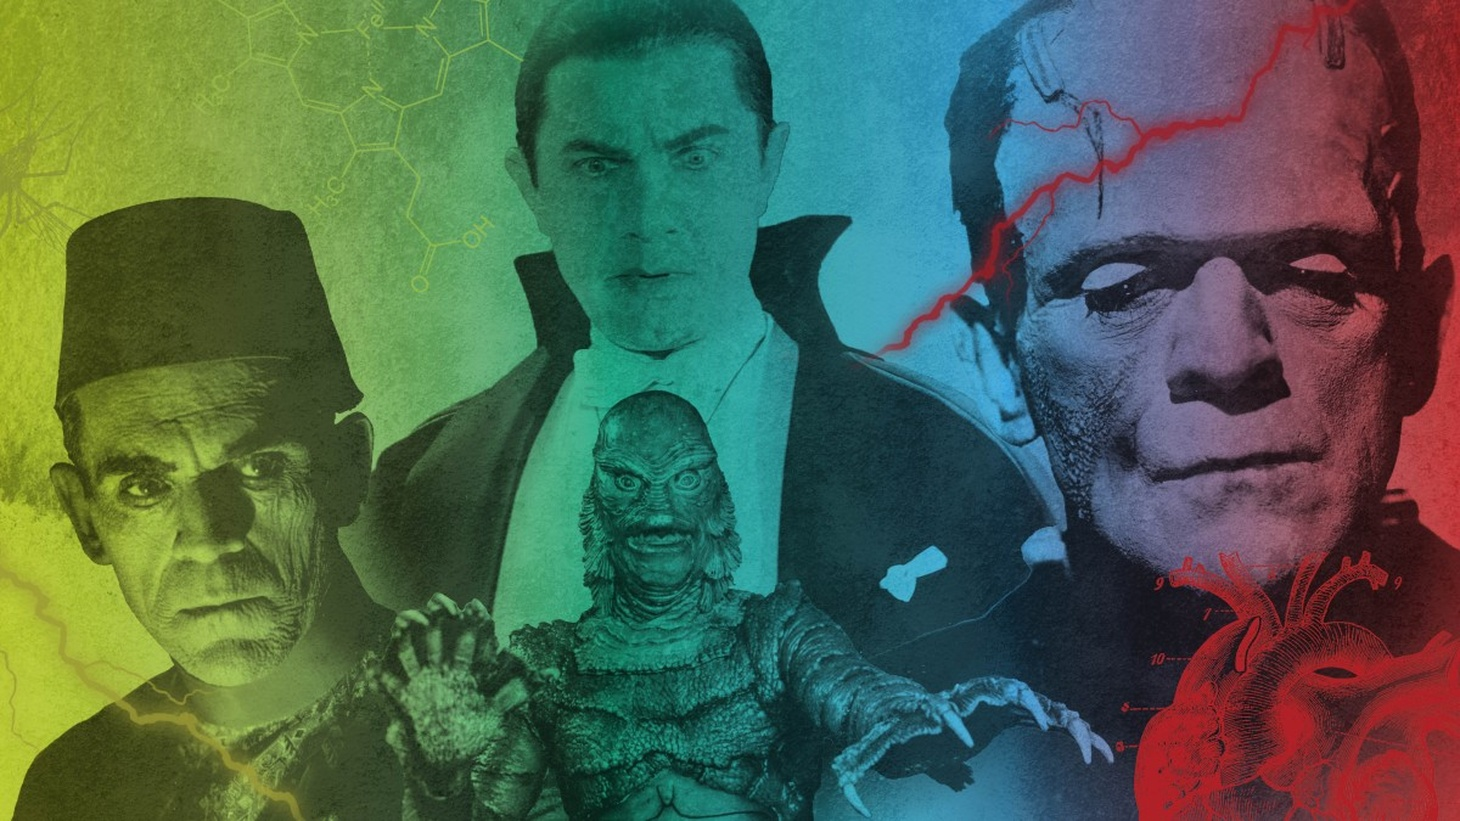 The Natural History Museum offers an up close look at the science behind classic horror films. Images from the iconic films, Creature from the Black Lagoon, Frankenstein, The Mummy, and Dracula.